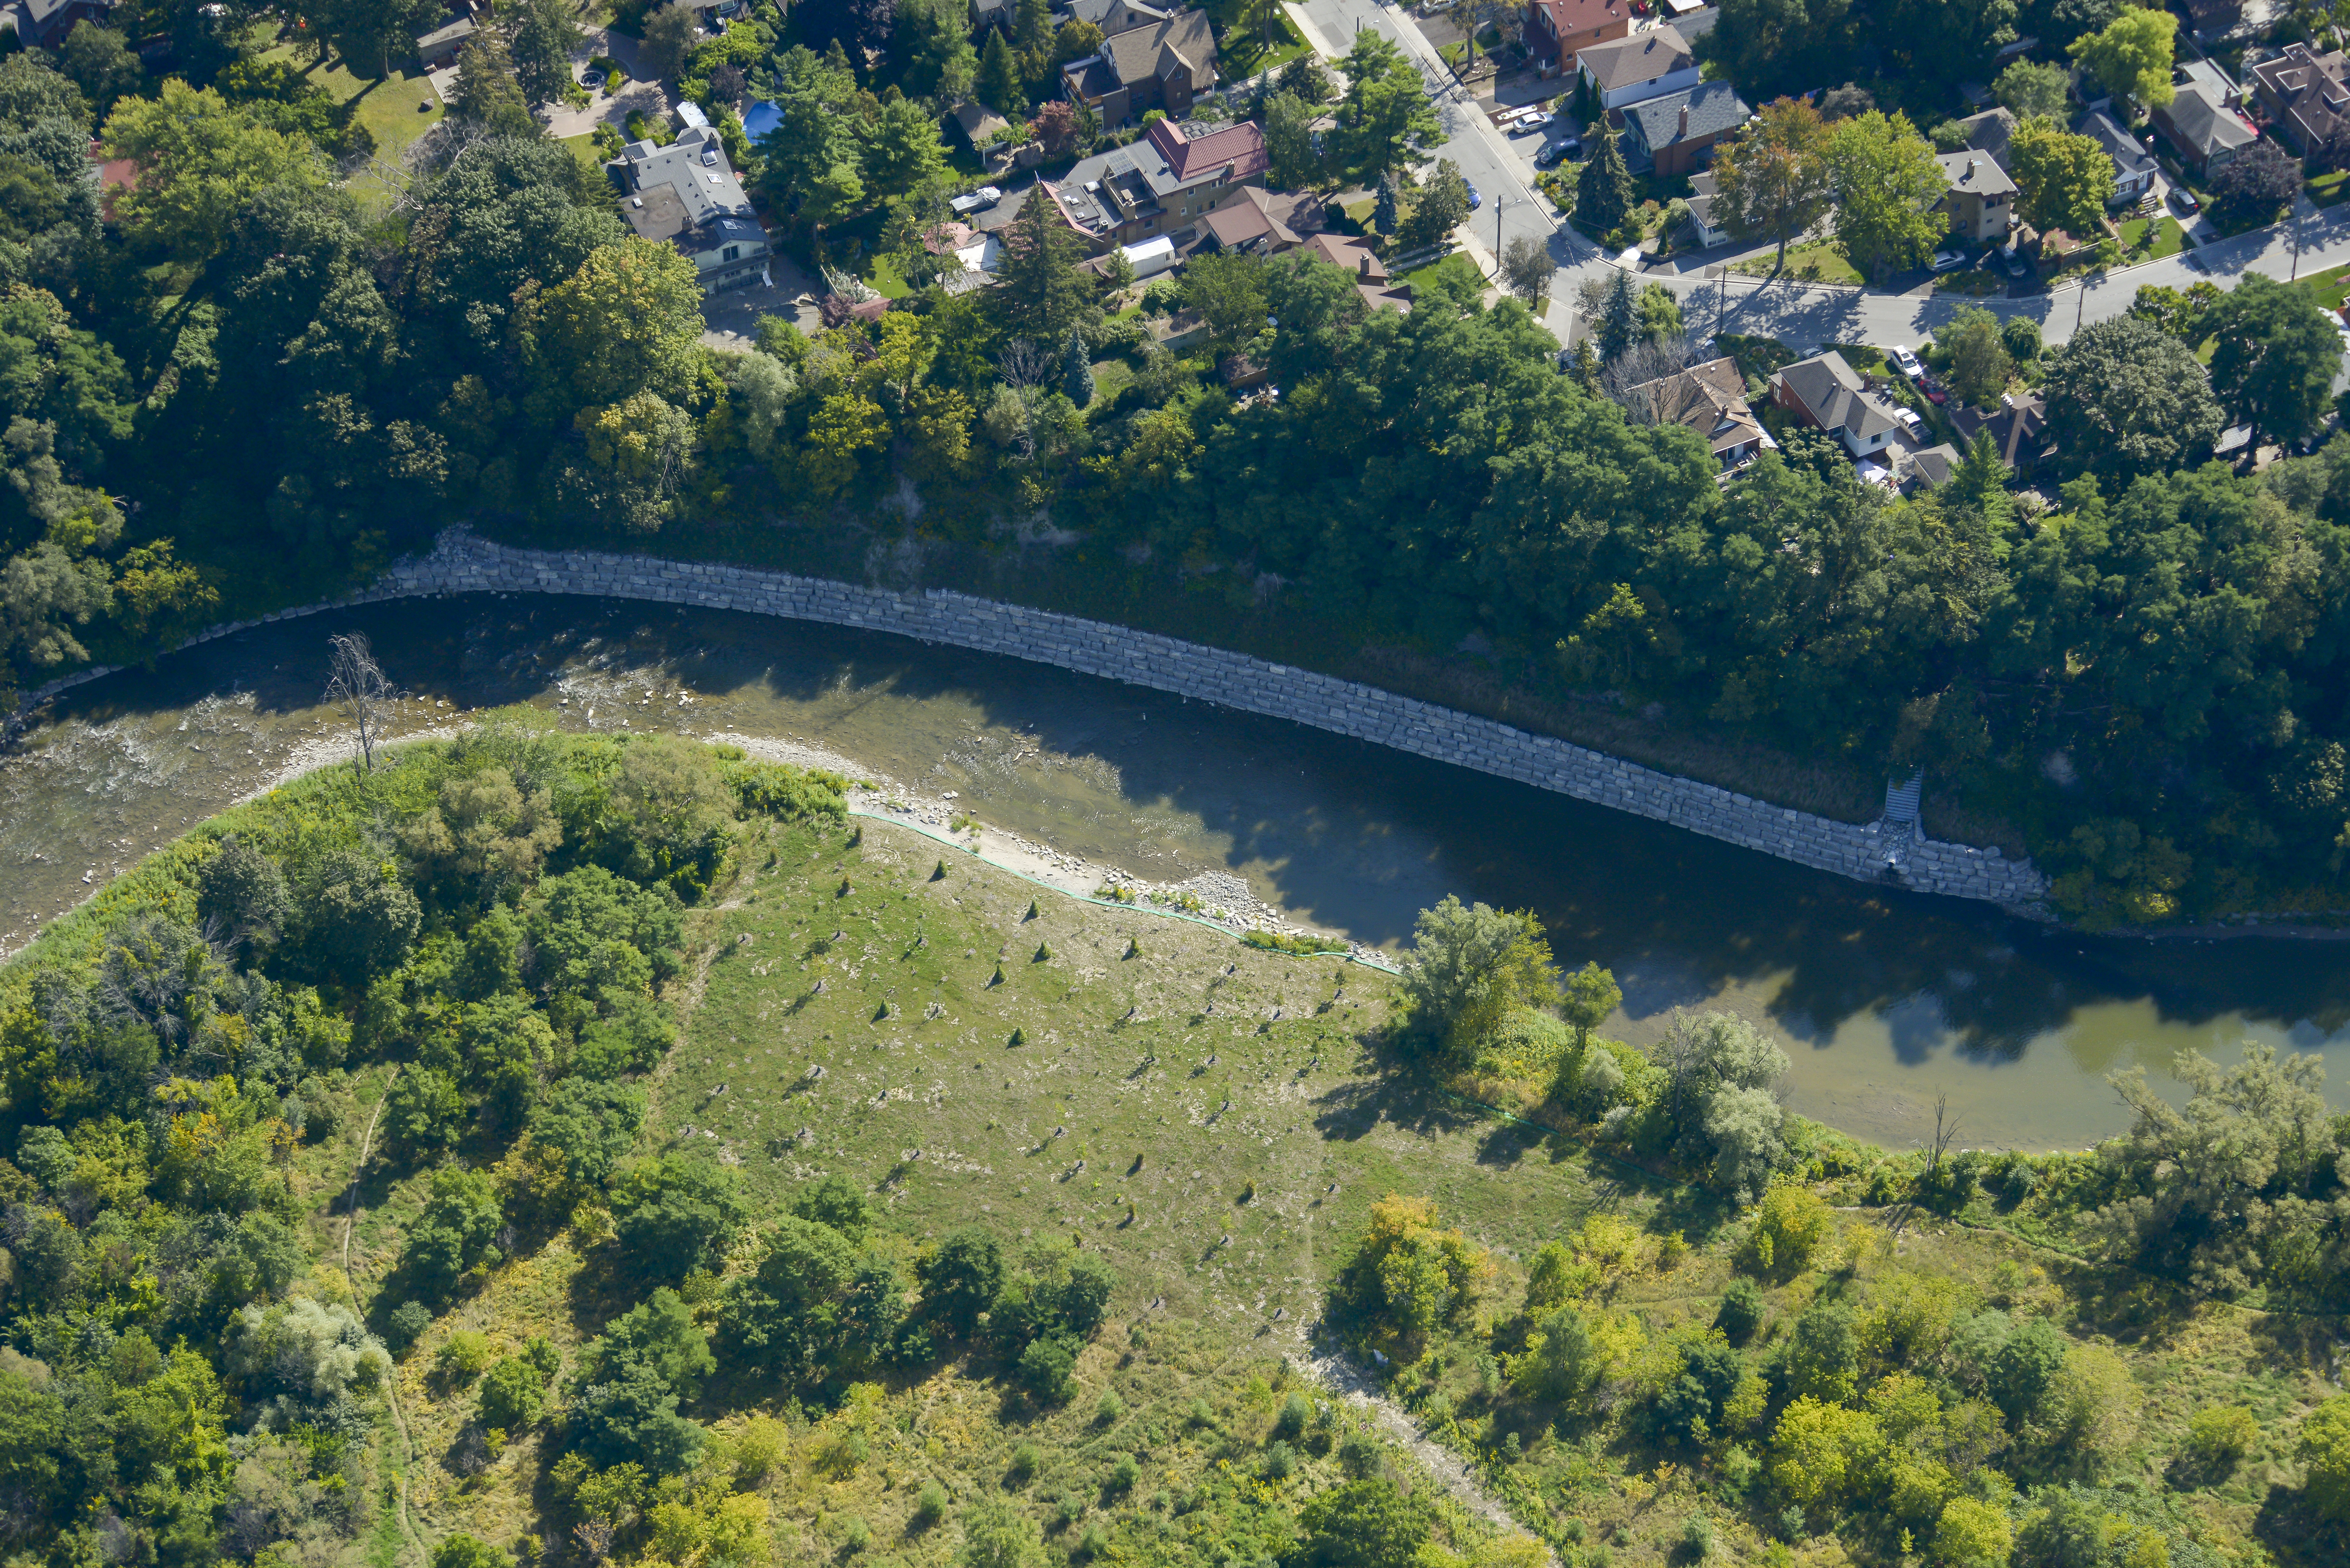 An aerial view of an armourstone wall along the bank of the Humber River